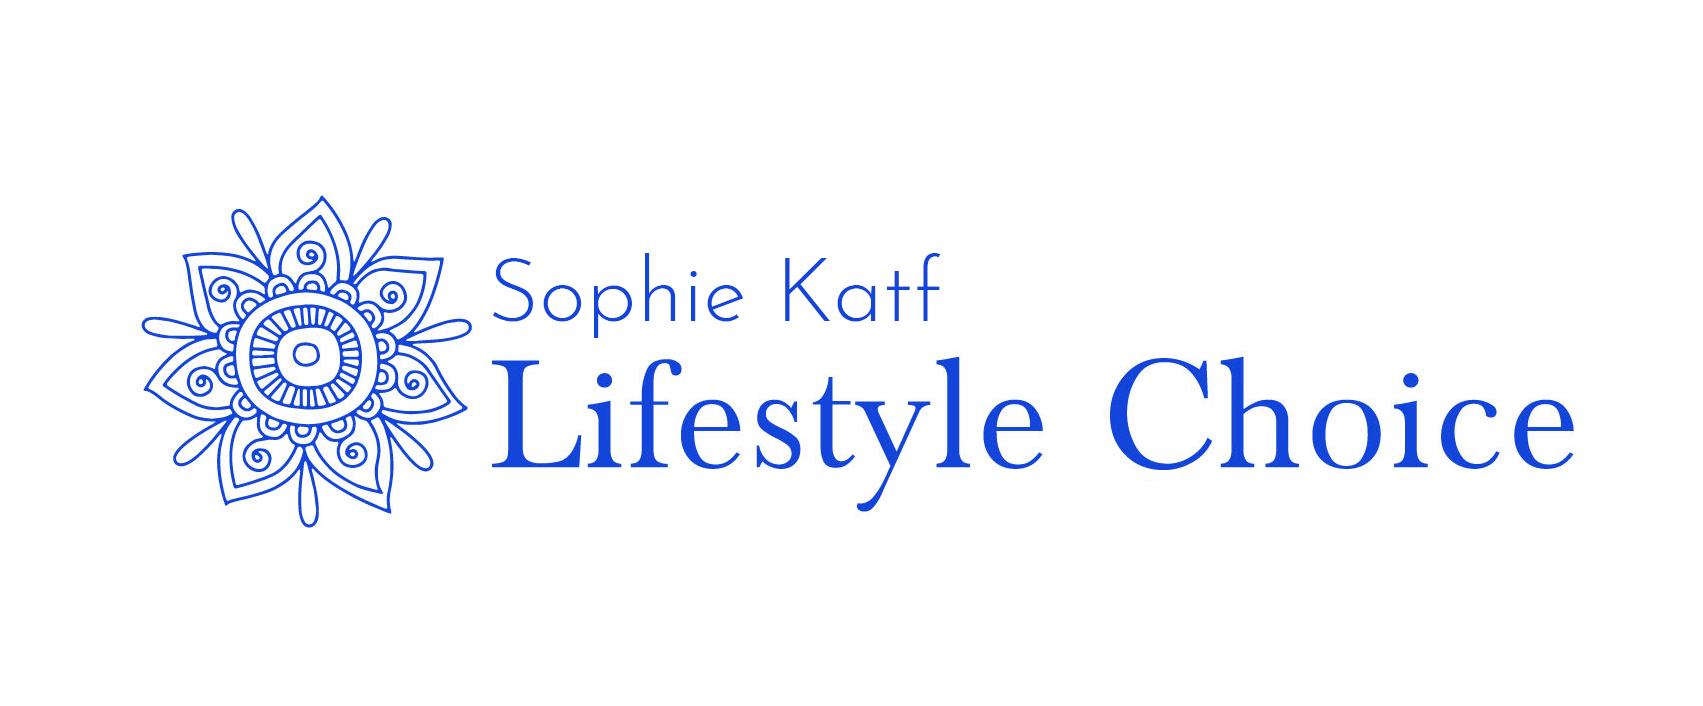 Lifestyle Choice Company Logo